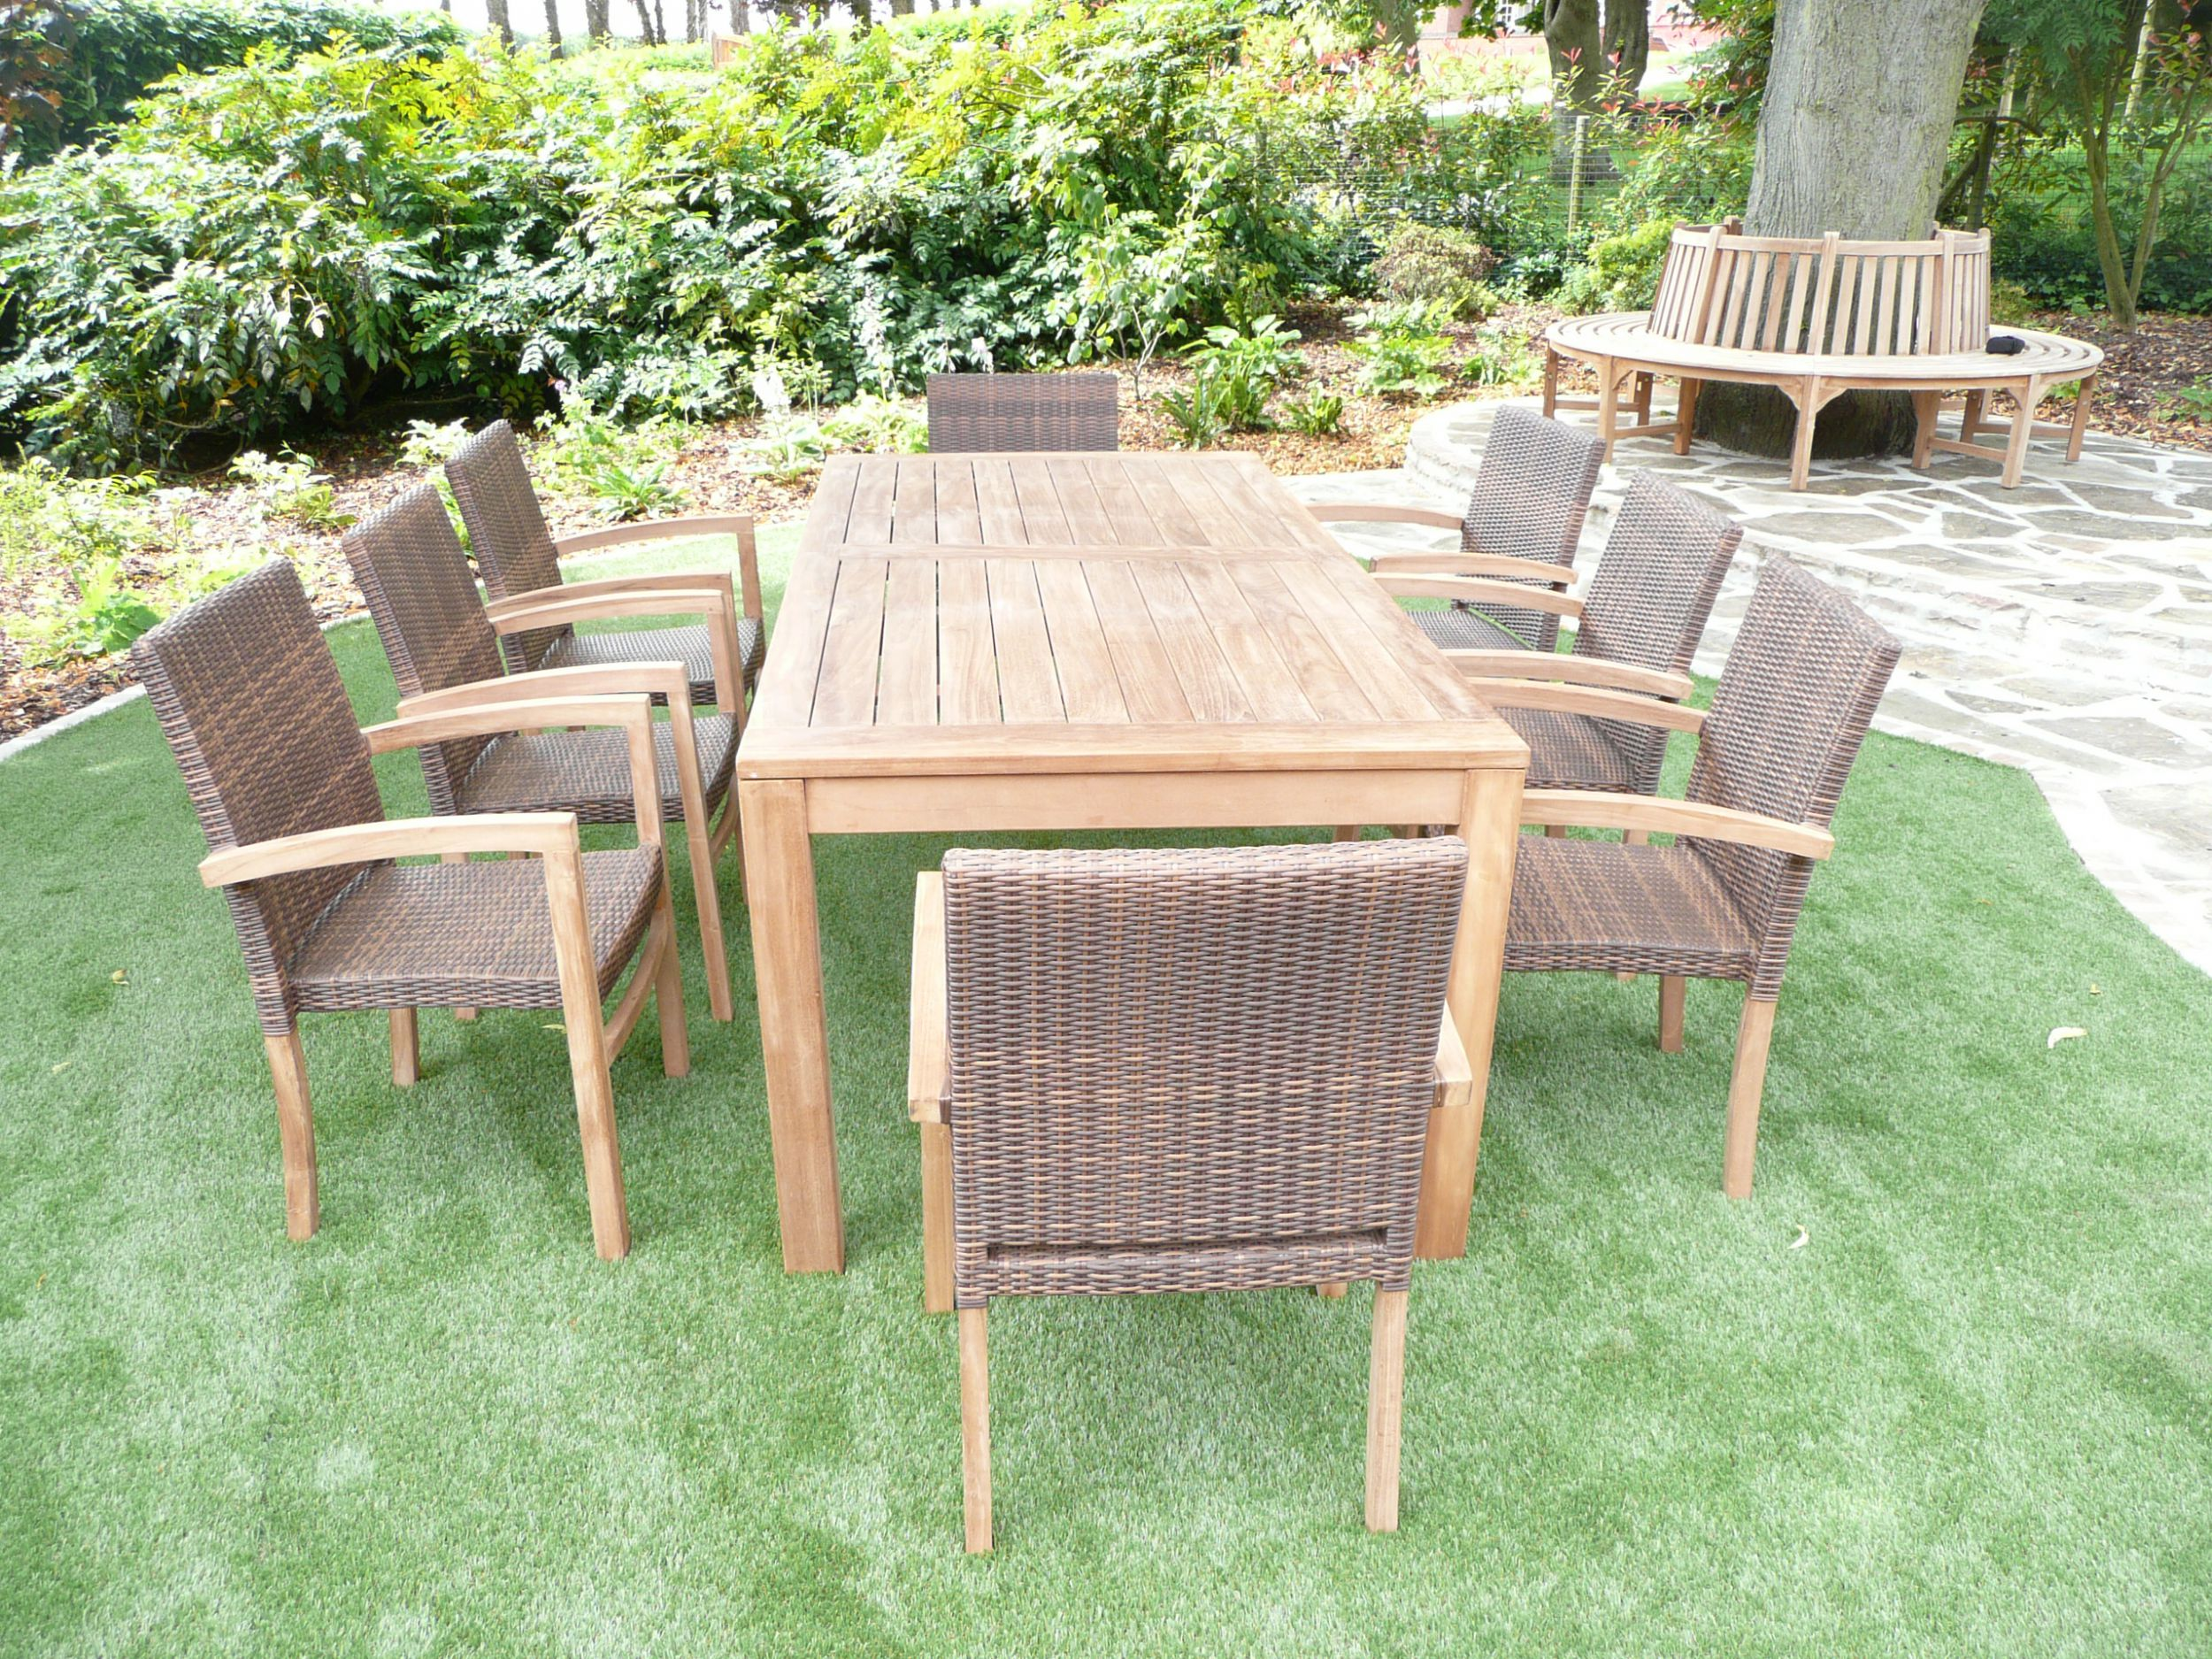 Cannes 8 Seater Teak \u0026 Rattan Garden Furniture Set & Cannes 8 Seater Teak \u0026 Rattan Patio Set | Humber Imports